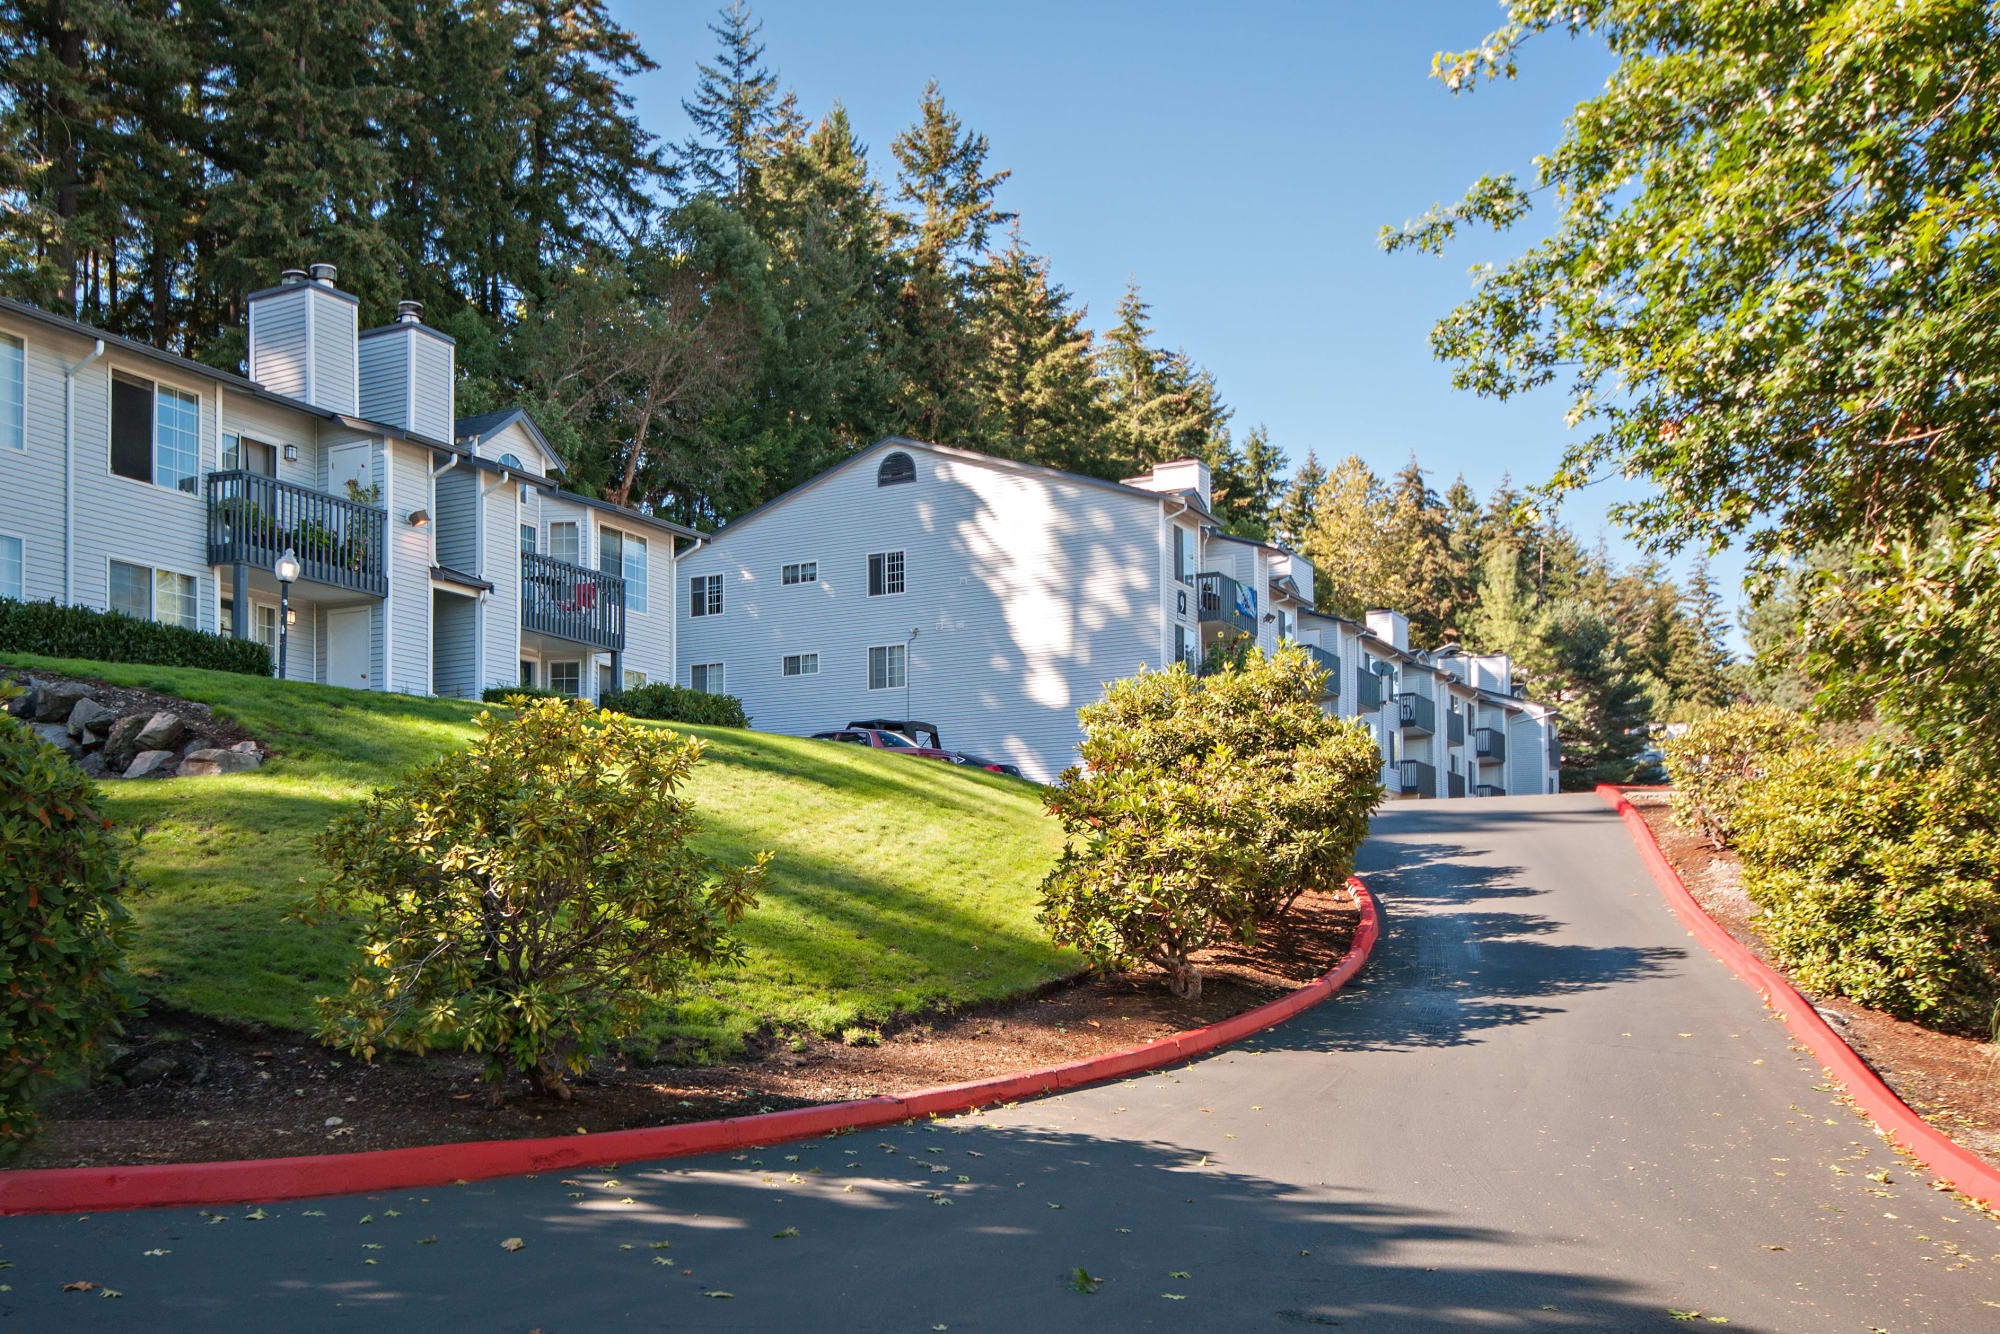 The driveway up to the garages and apartments at Wellington Apartment Homes in Silverdale, Washington